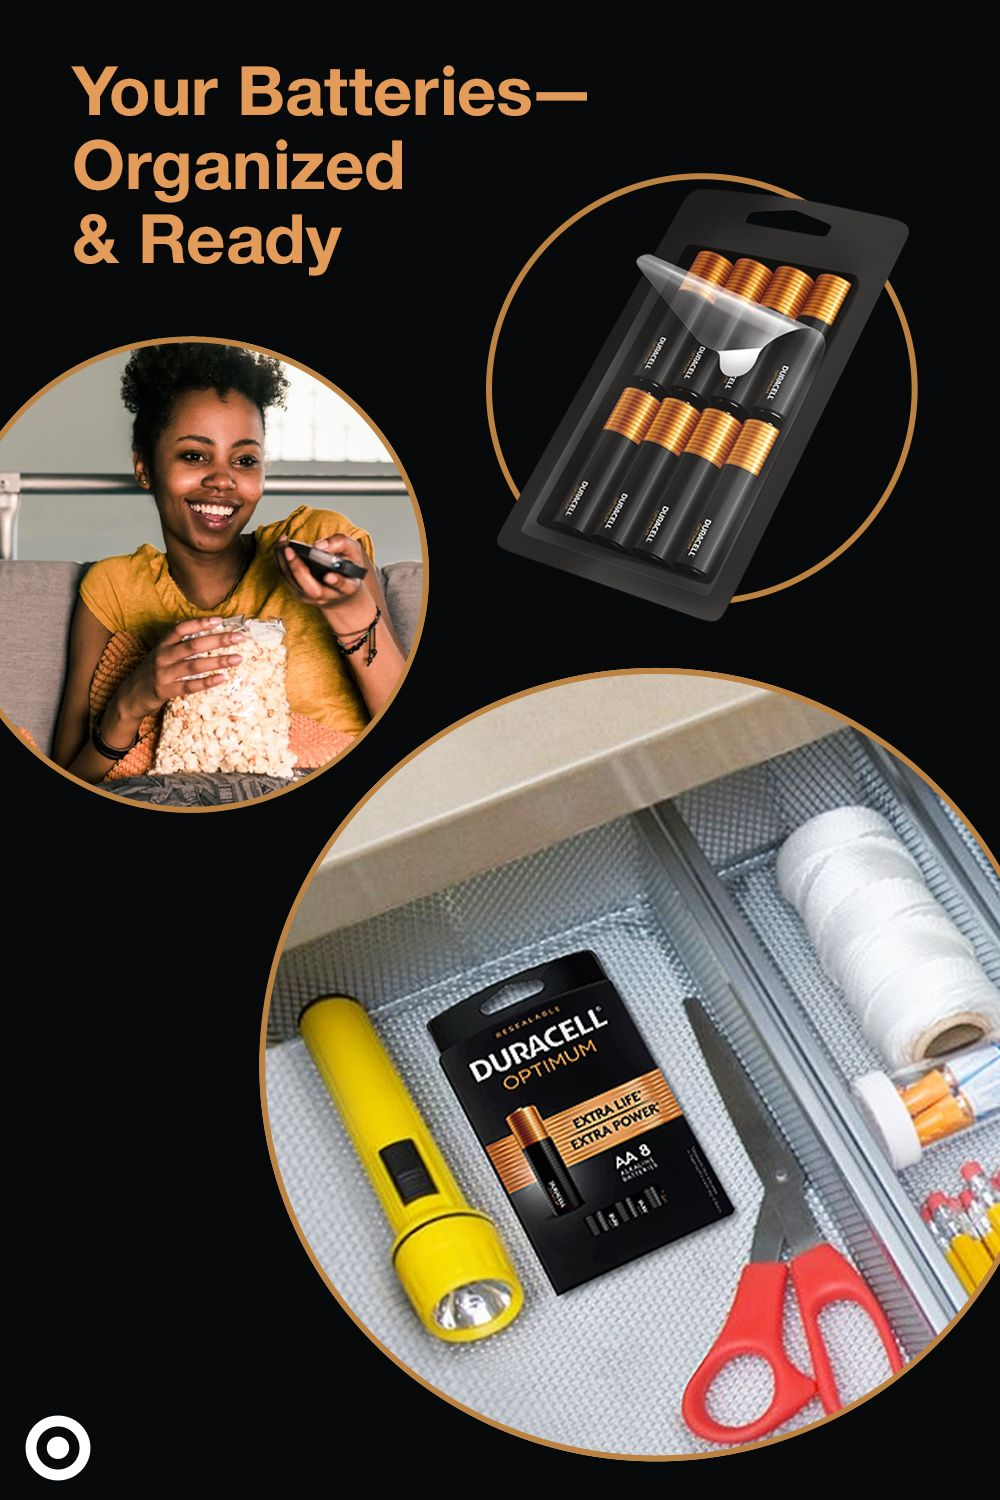 Shop Duracell Optimum Batteries Packaged In A Resealable Storage Tray Delivers Extra Life In Some Devices Duracell Cute Car Accessories Emergency Preparation